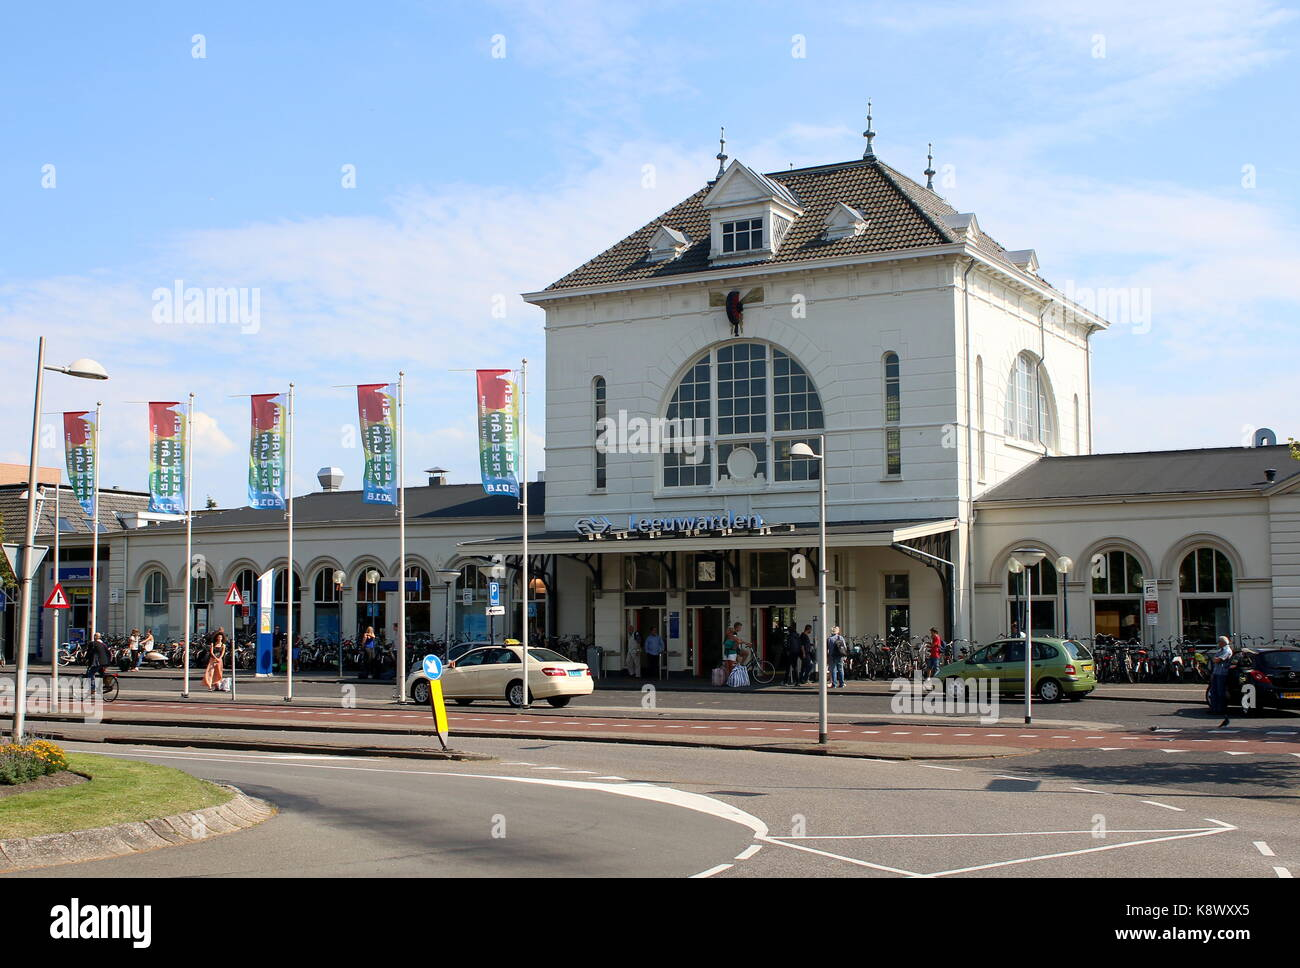 Main 19th century railway station of Leeuwarden, Friesland, The Netherlands - Stock Image